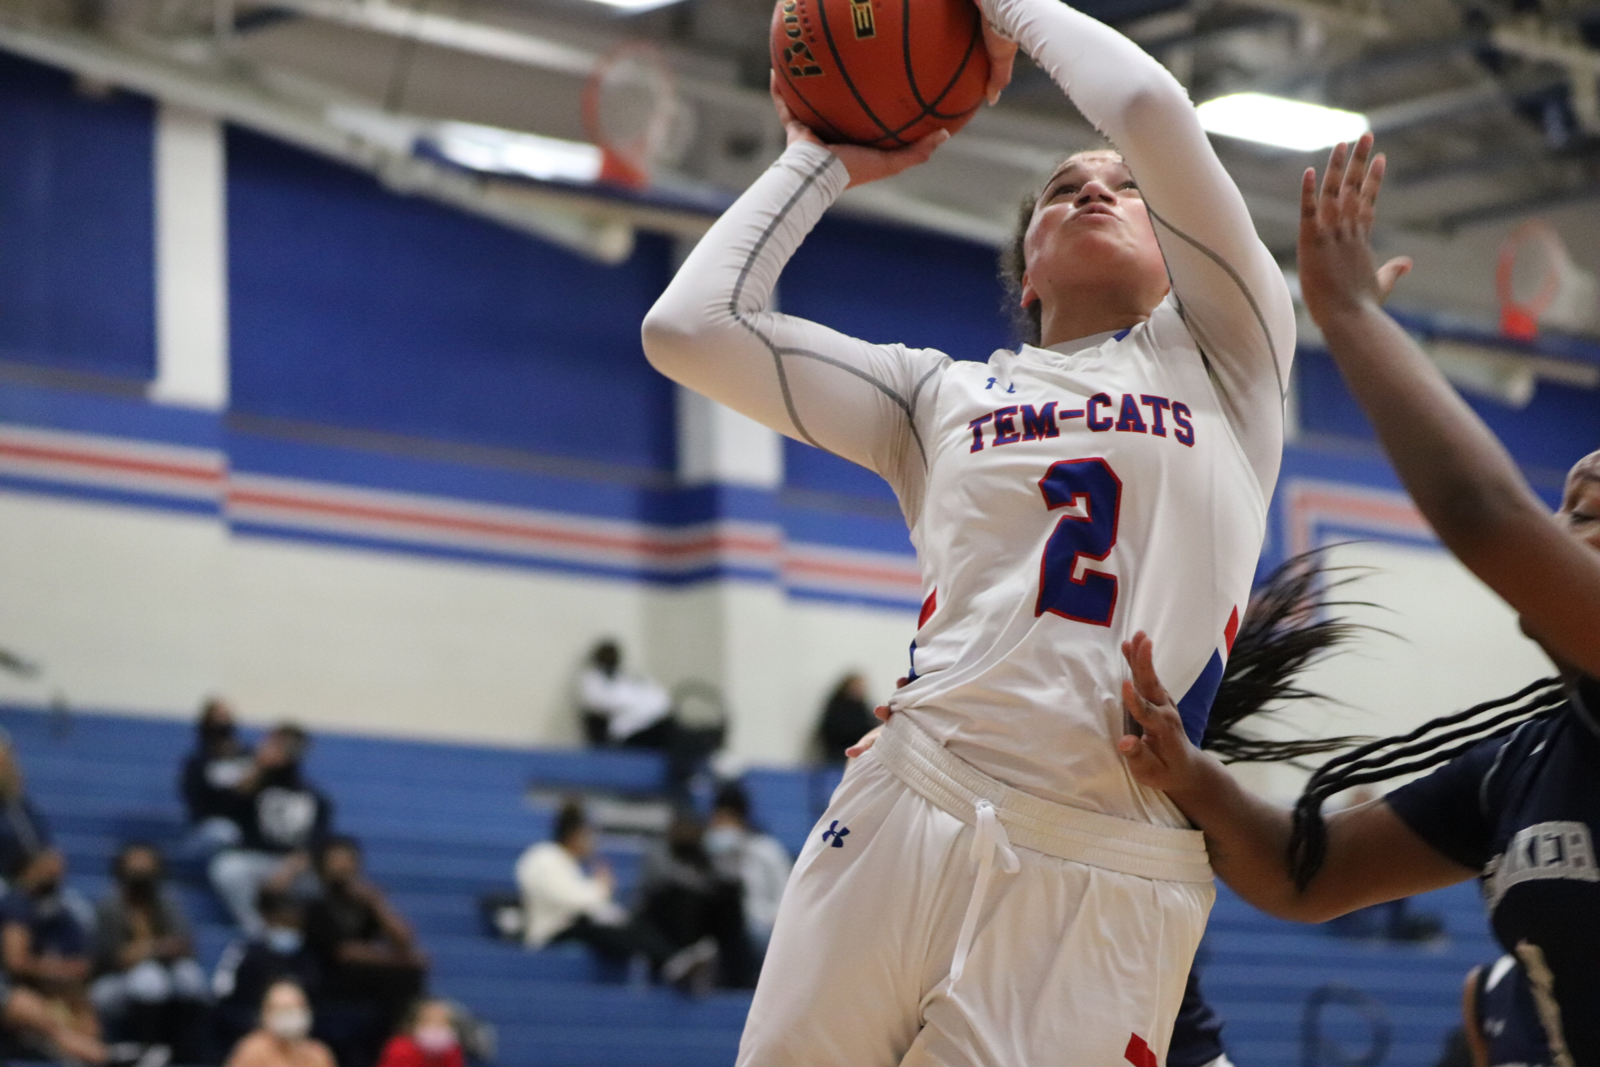 Hall highlights Tem-Cats' 12-6A honors